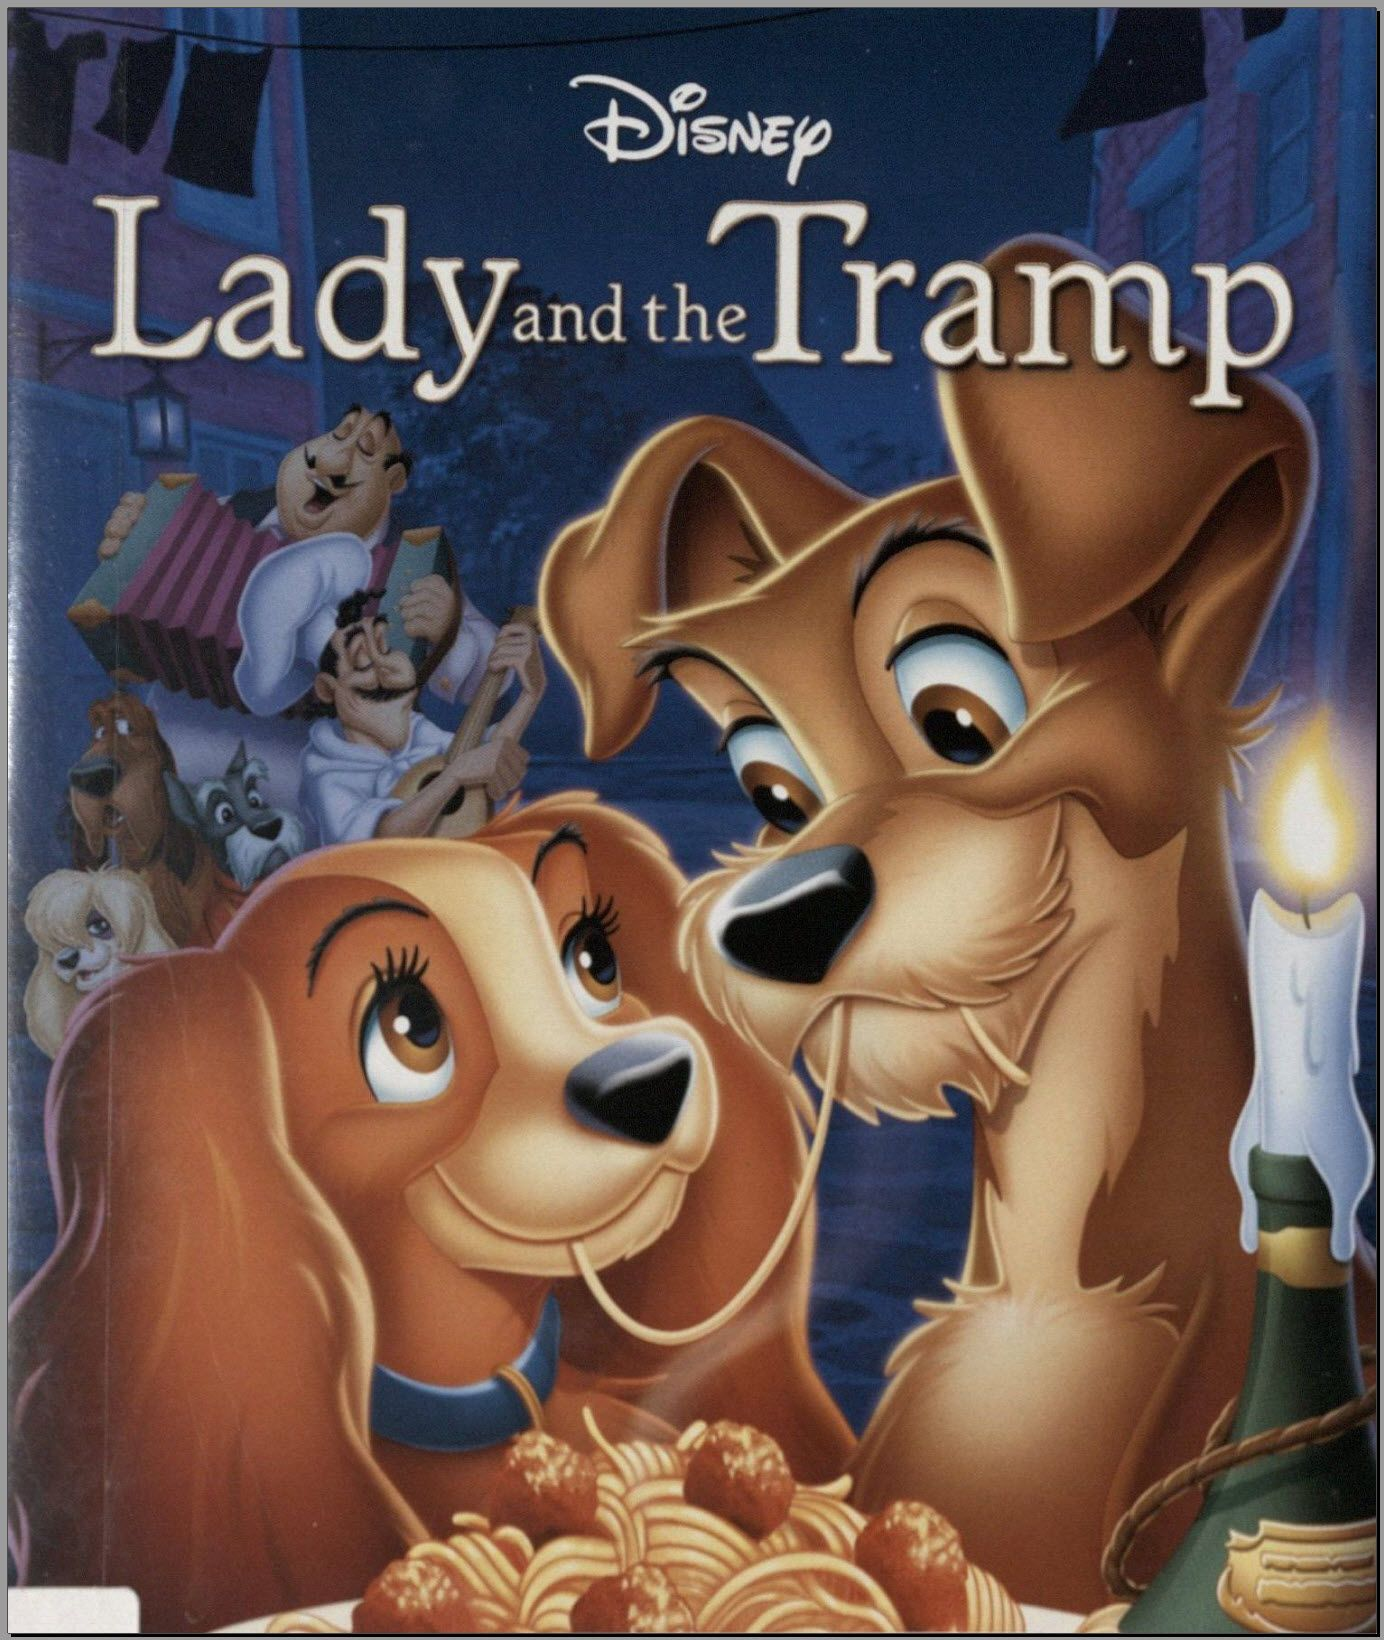 Disney animated movies image by Rusty Wolfe on DVD Full